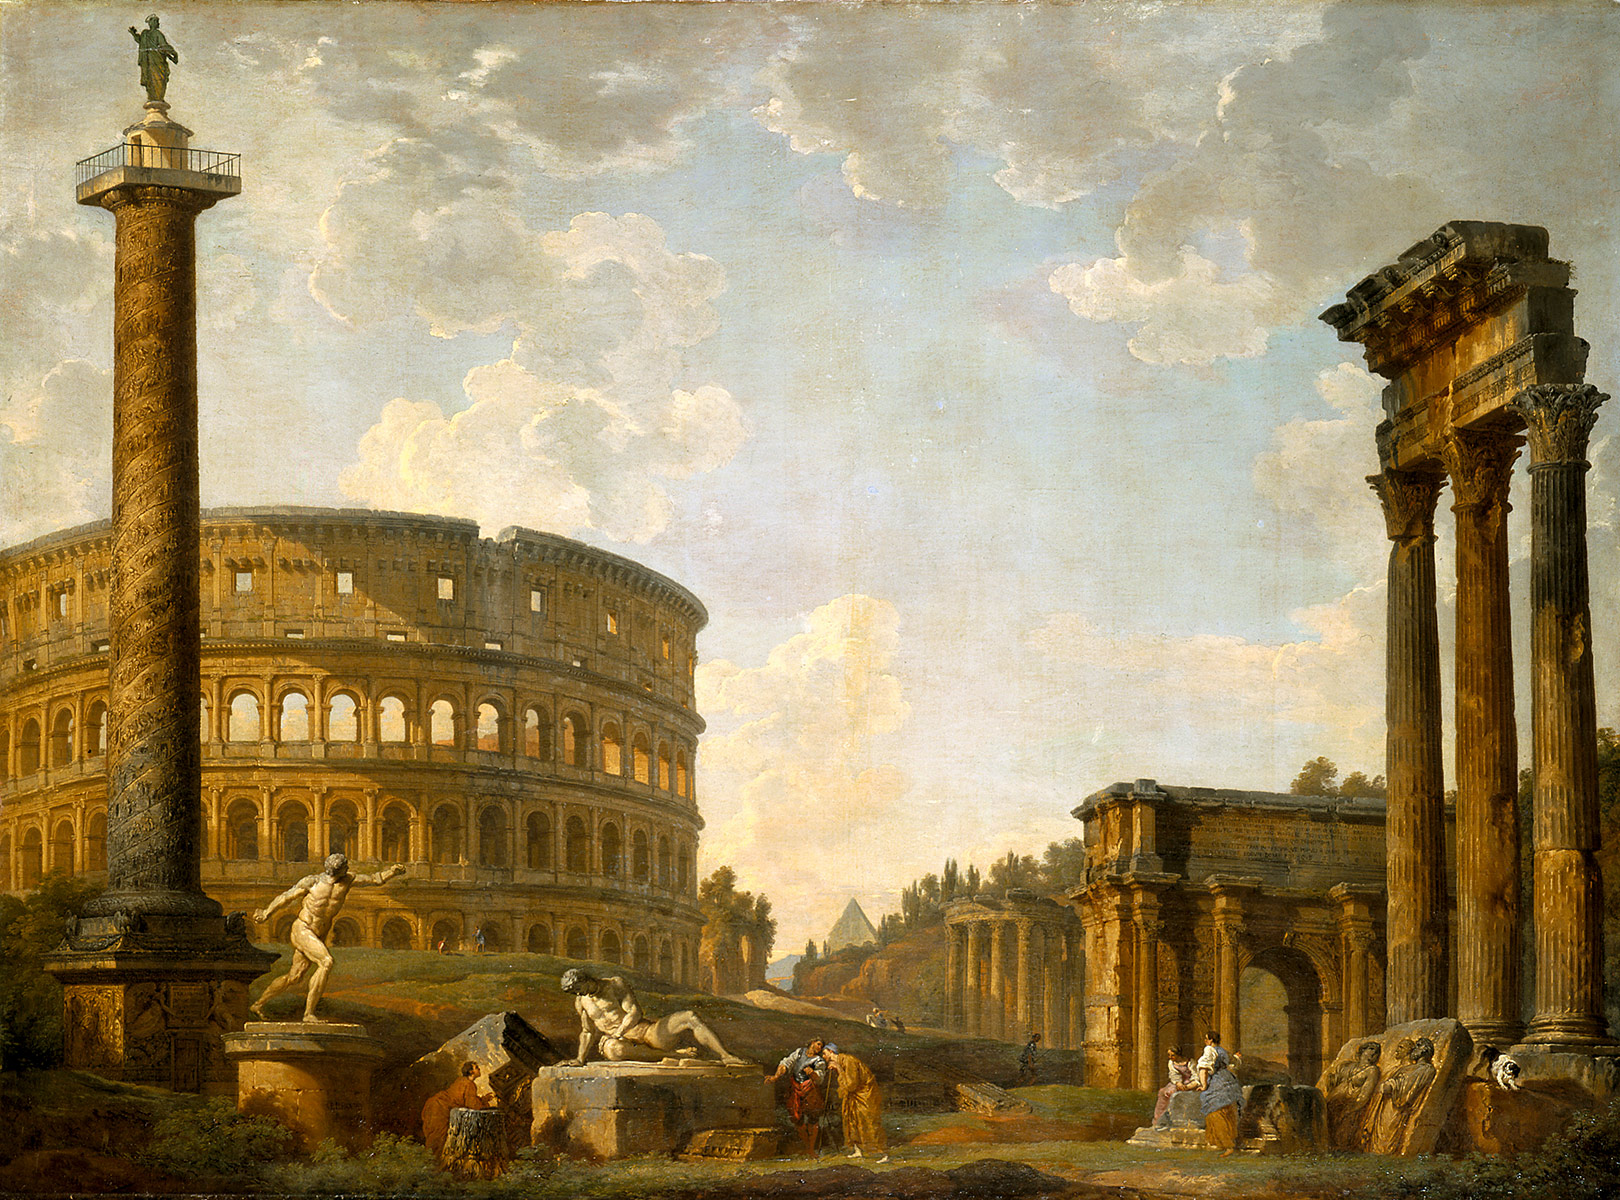 Roman Capriccio, The Colosseum and Other Monuments